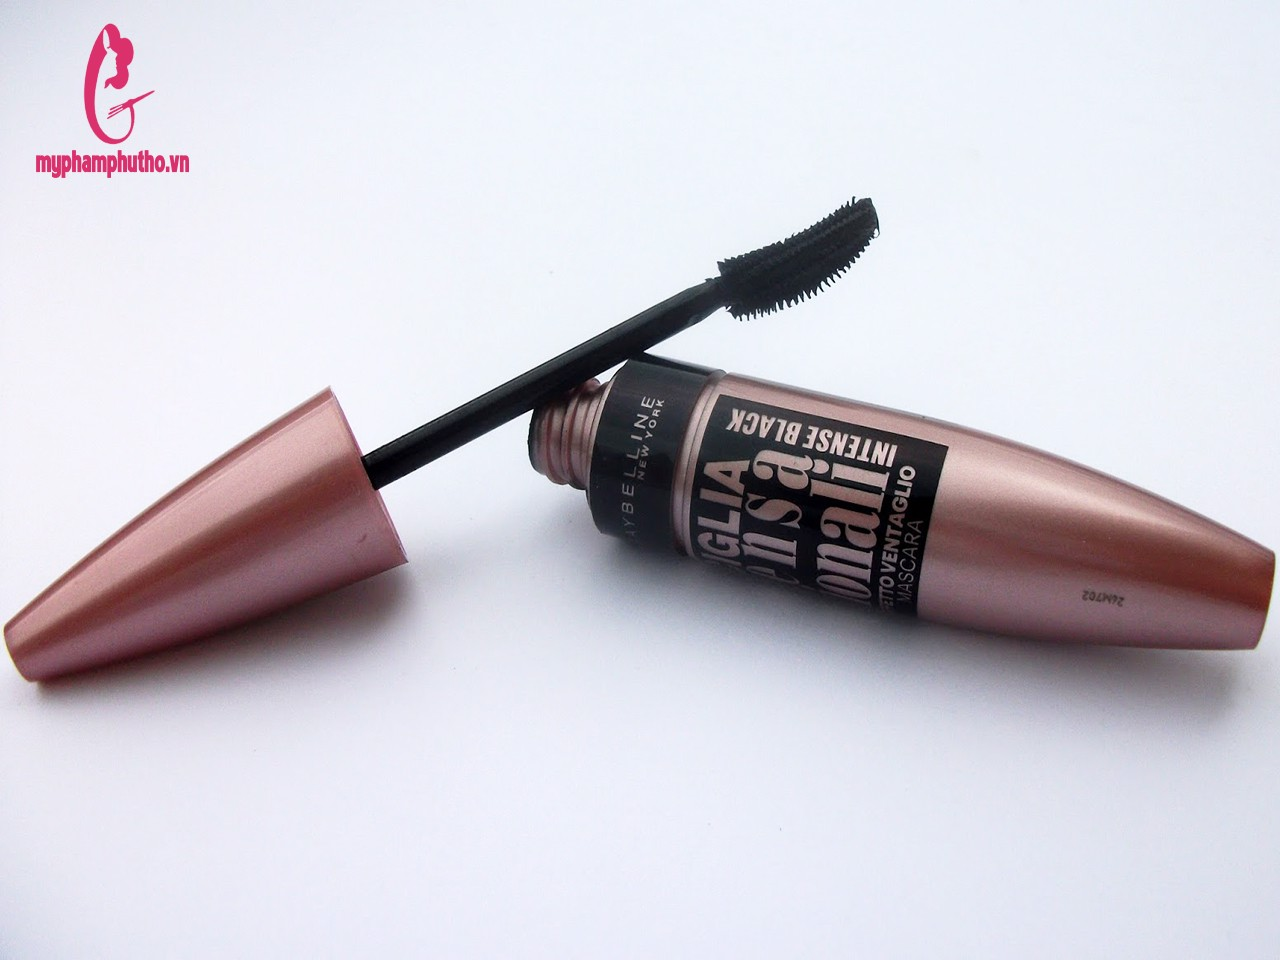 Mascara maybelline lash sensational intense black